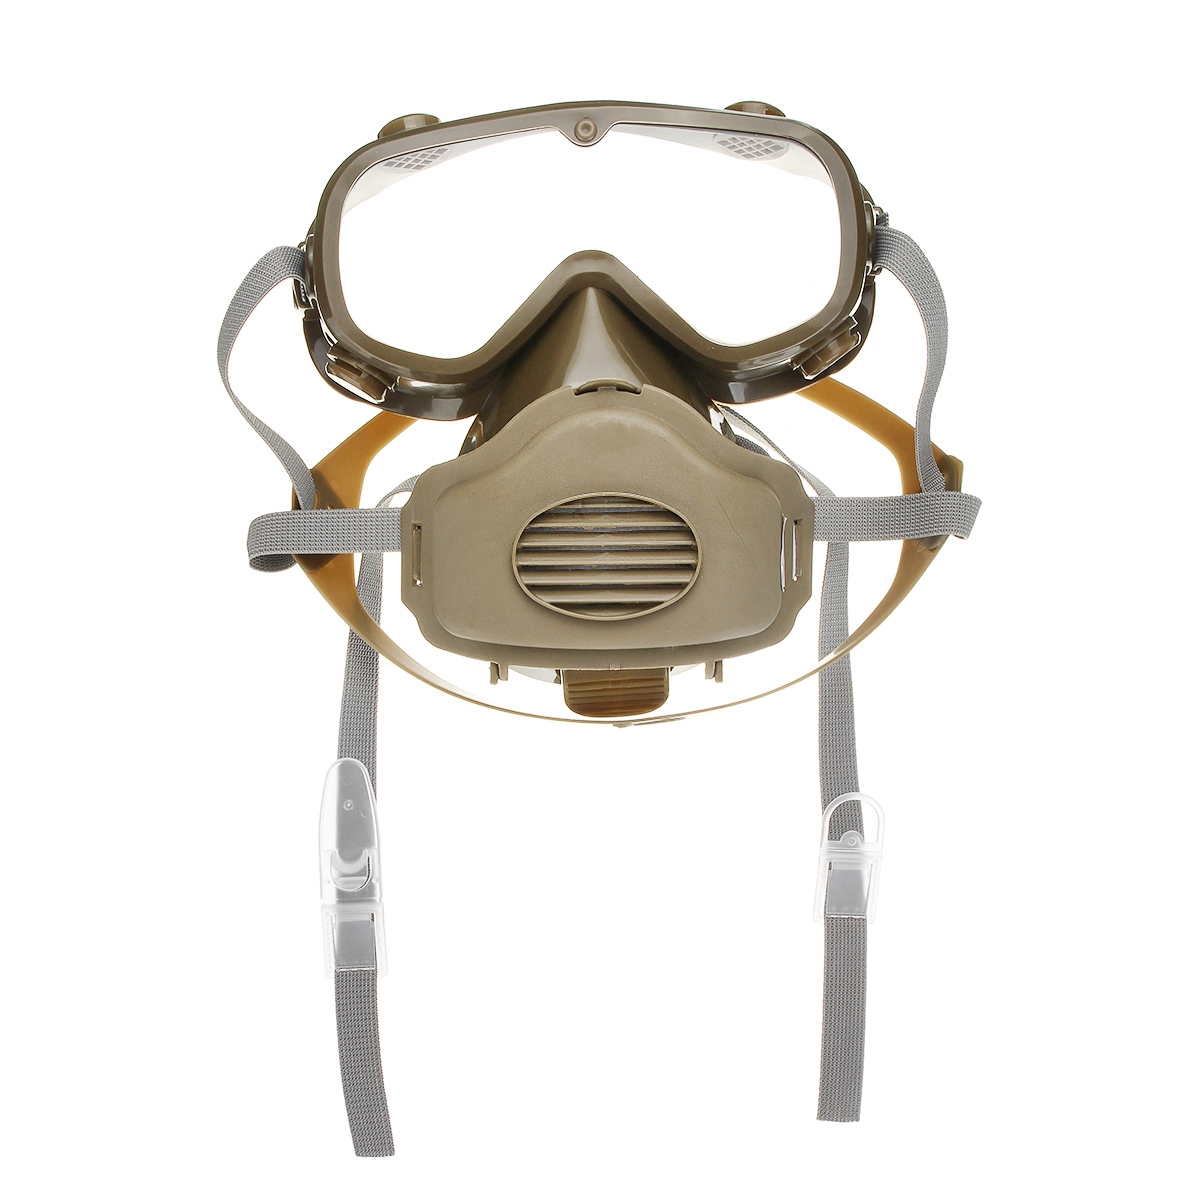 Full Face Mask Goggles Respirator Gas Chemical Dust Smoke Fire Paint Protector